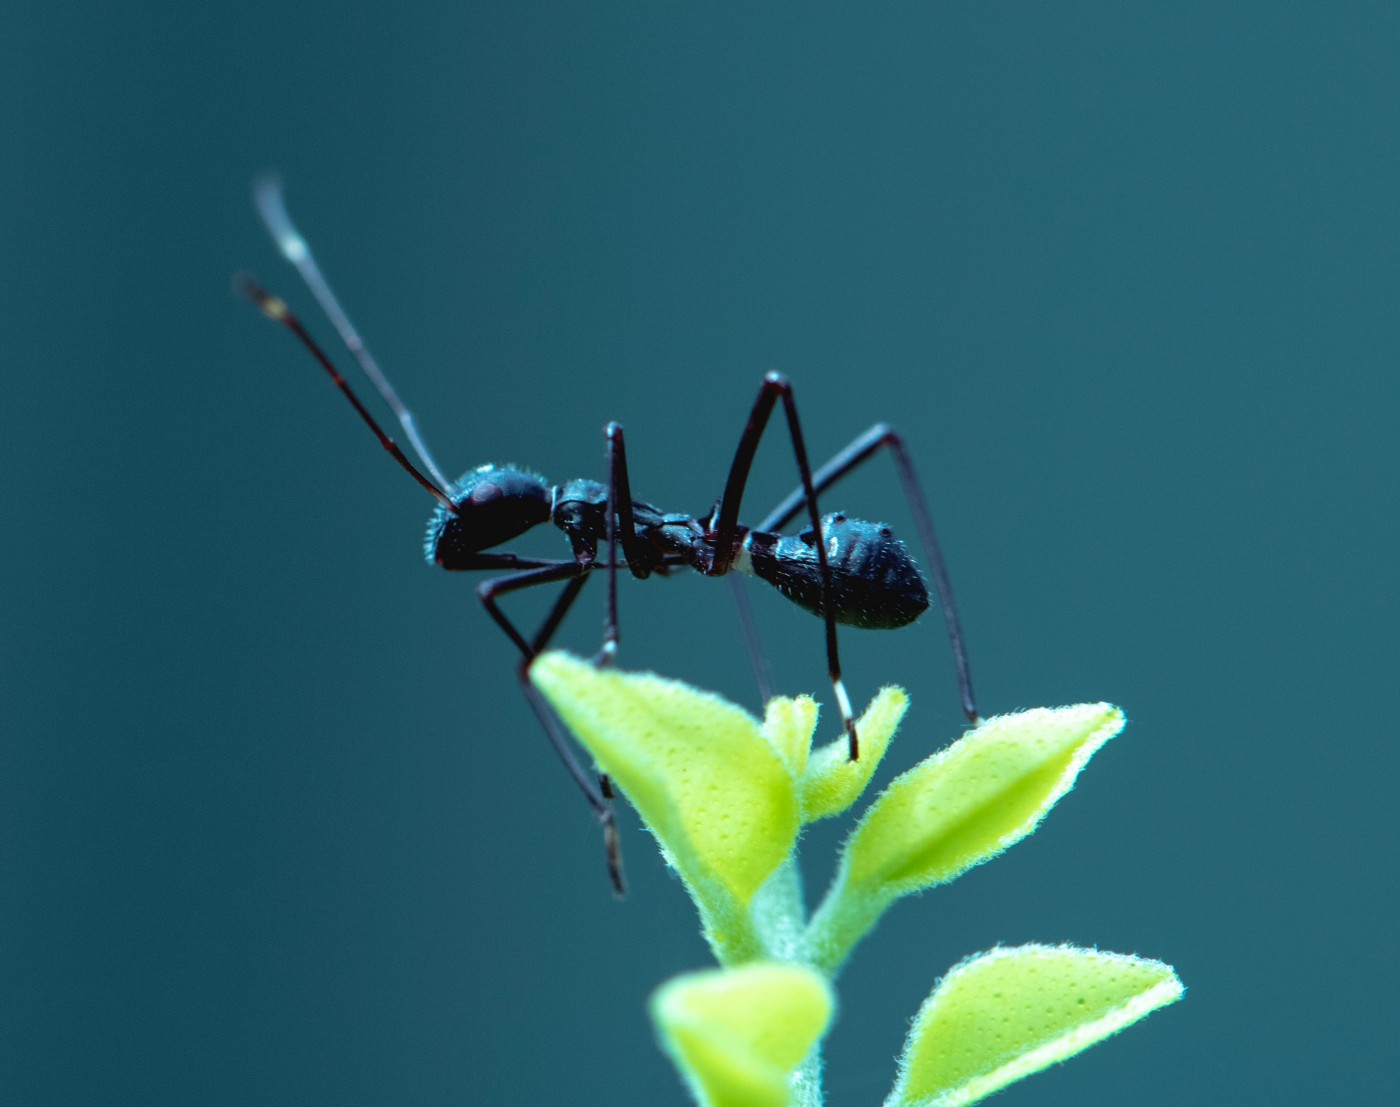 An ant perched on a leaf